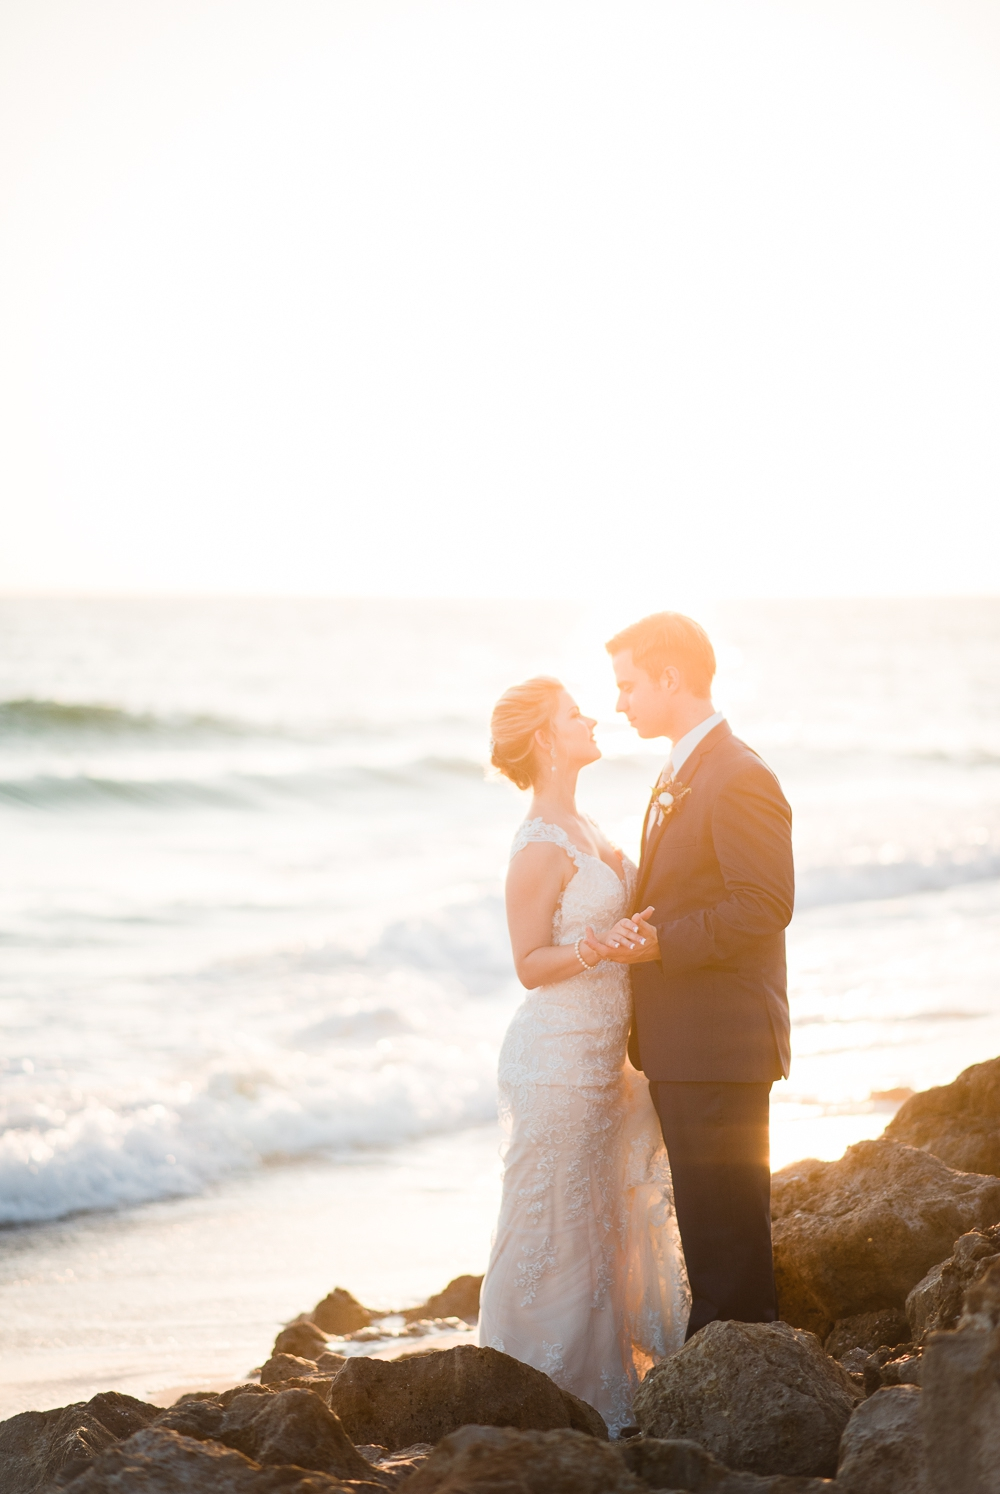 2016 HLM Wedding Beach Shoot 17.jpg